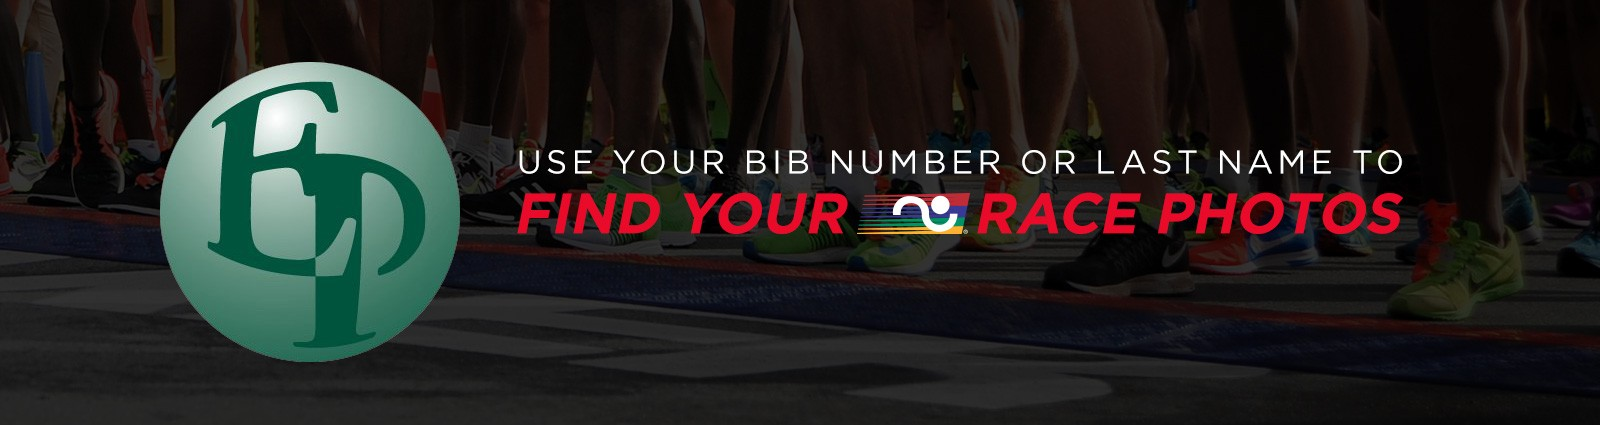 Use your bib number or last name to find your race photos!